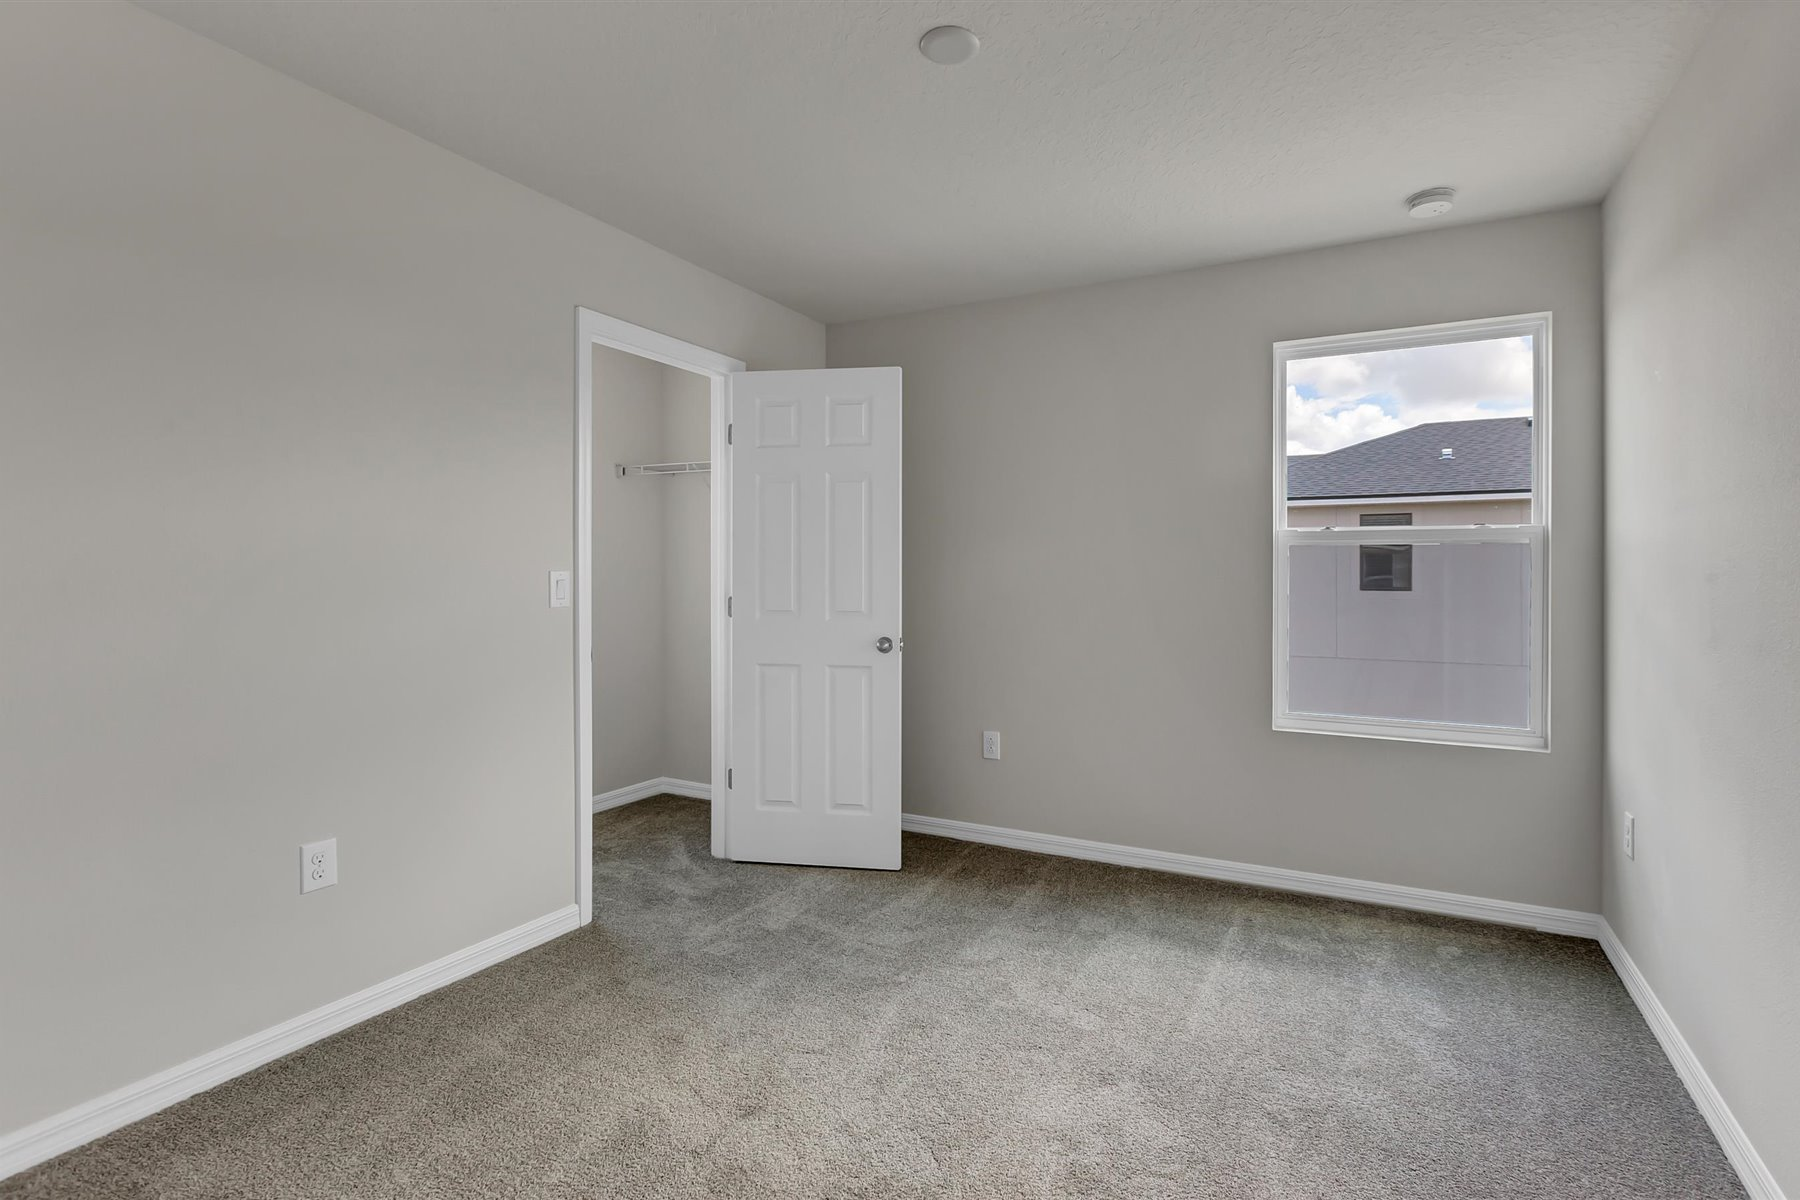 Palmetto Plan Bedroom at Tapestry in Kissimmee Florida by Mattamy Homes